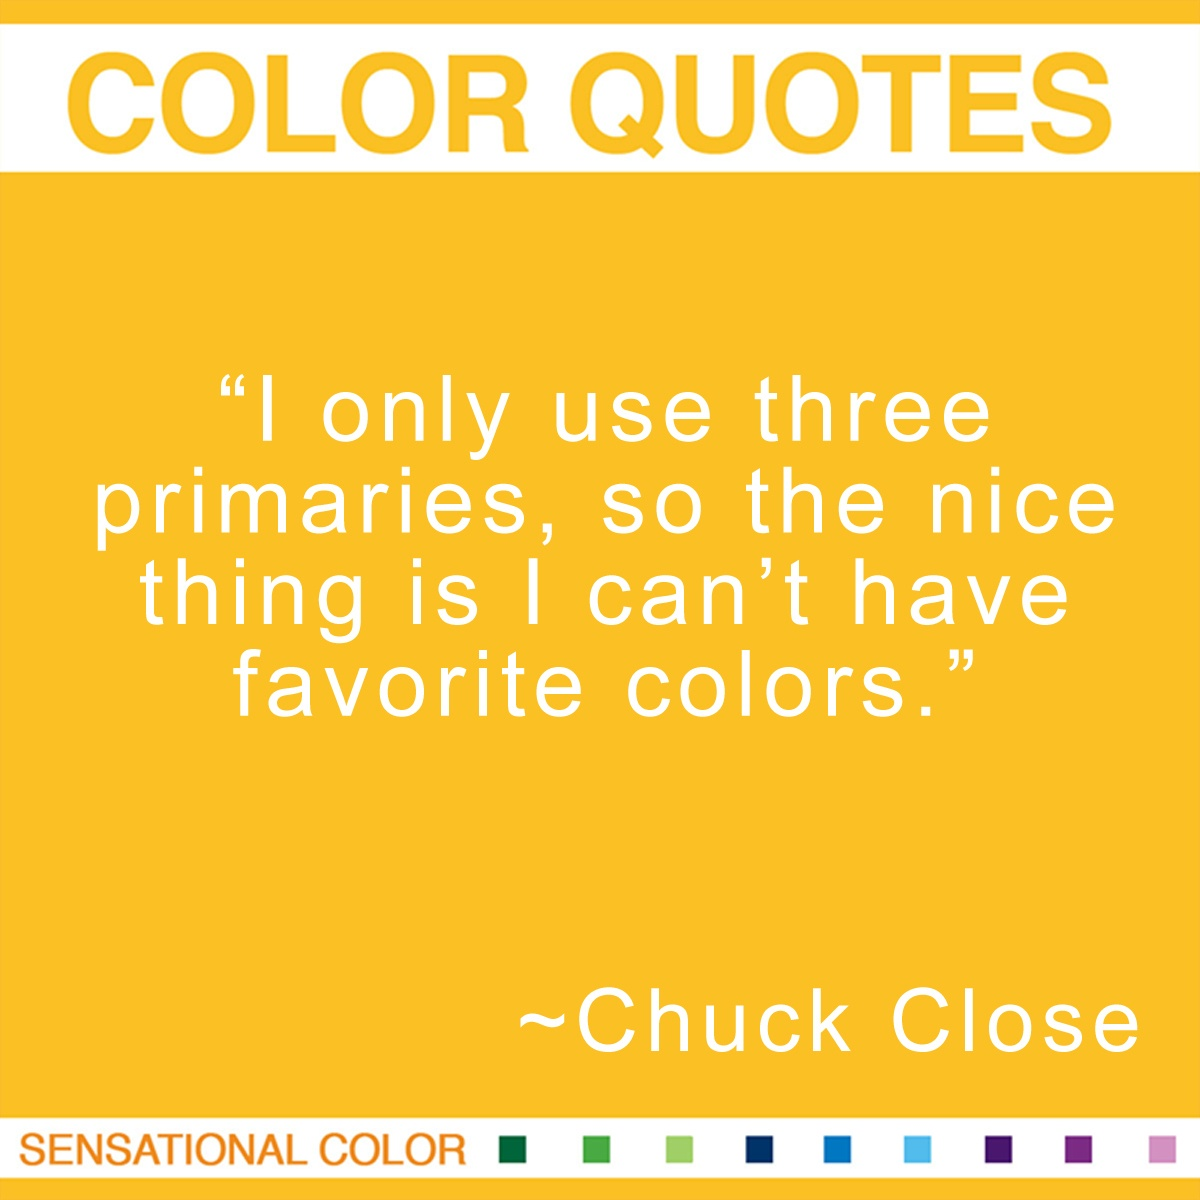 """I only use three primaries, so the nice thing is I can't have favorite colors."" - Chuck Close"